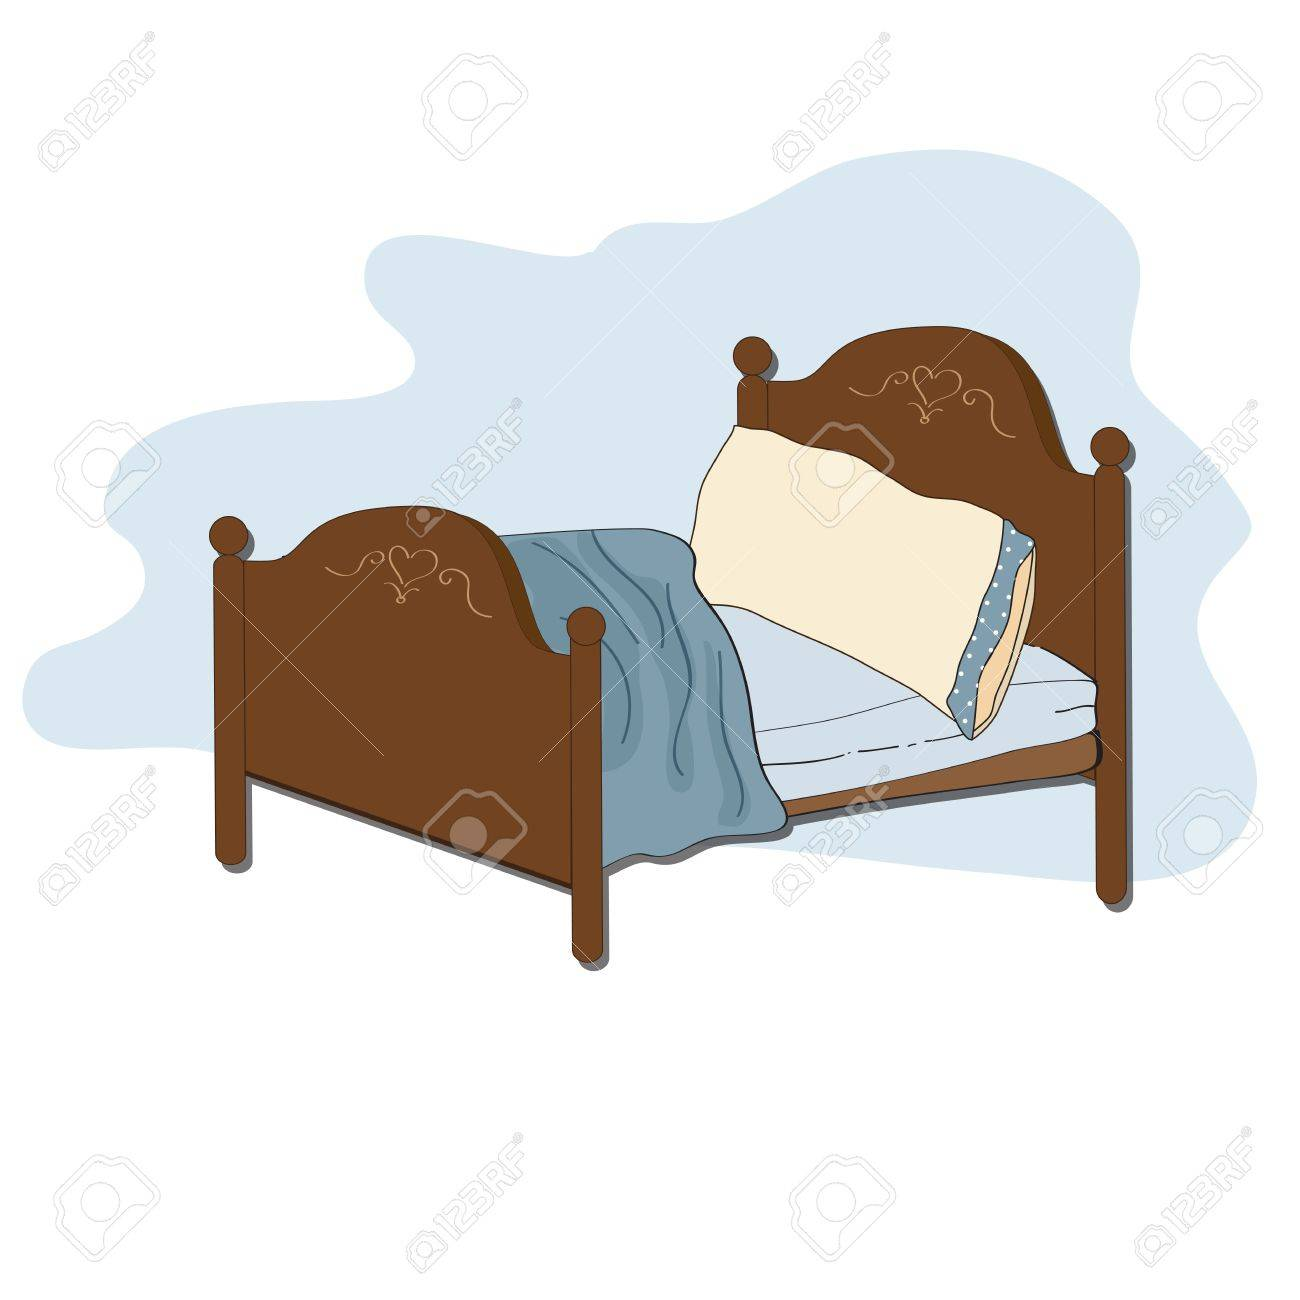 kid bed, illustration in vector format.